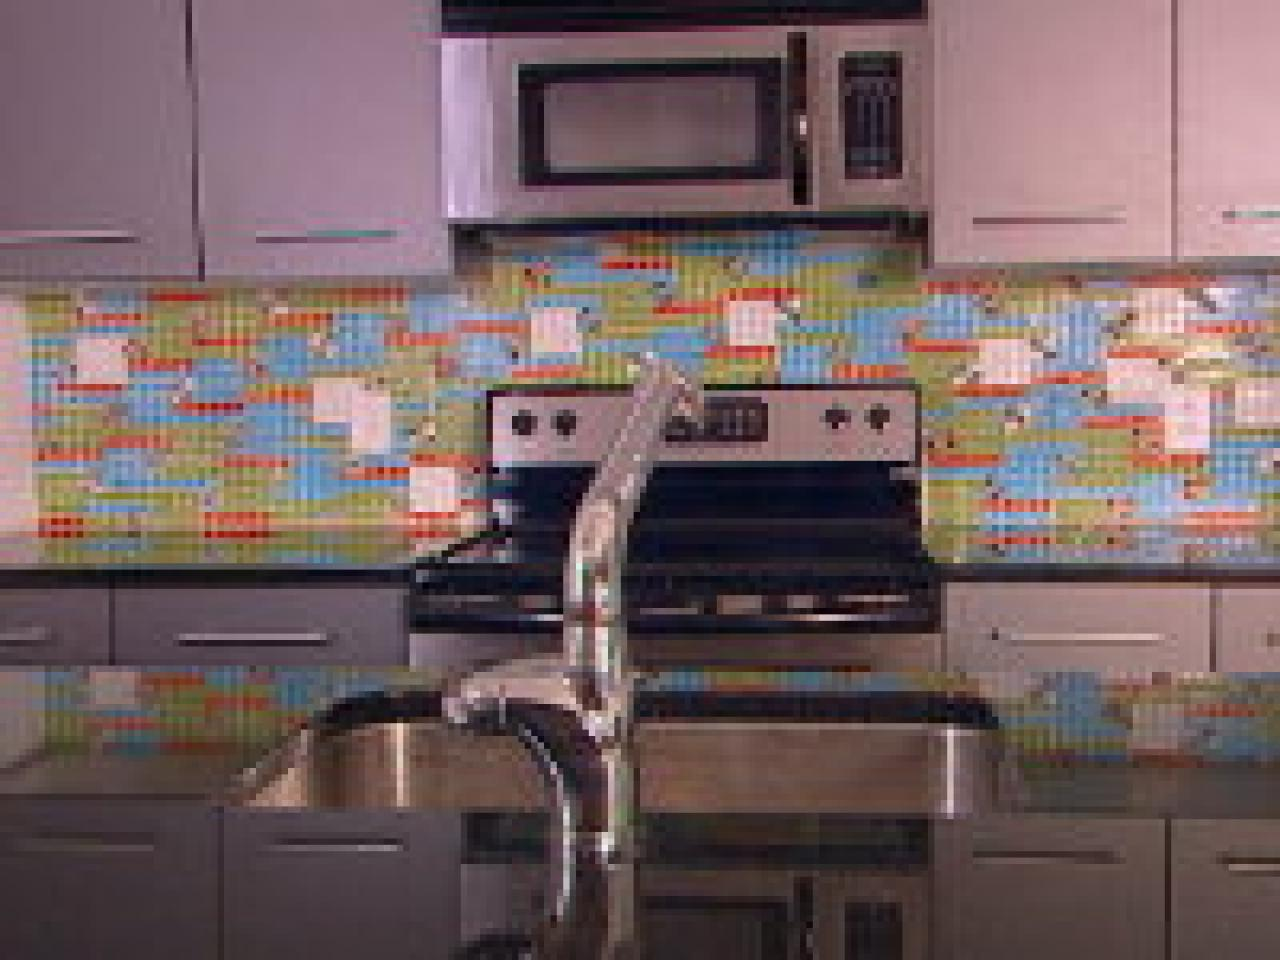 how to create a colorful glass tile backsplash | hgtv